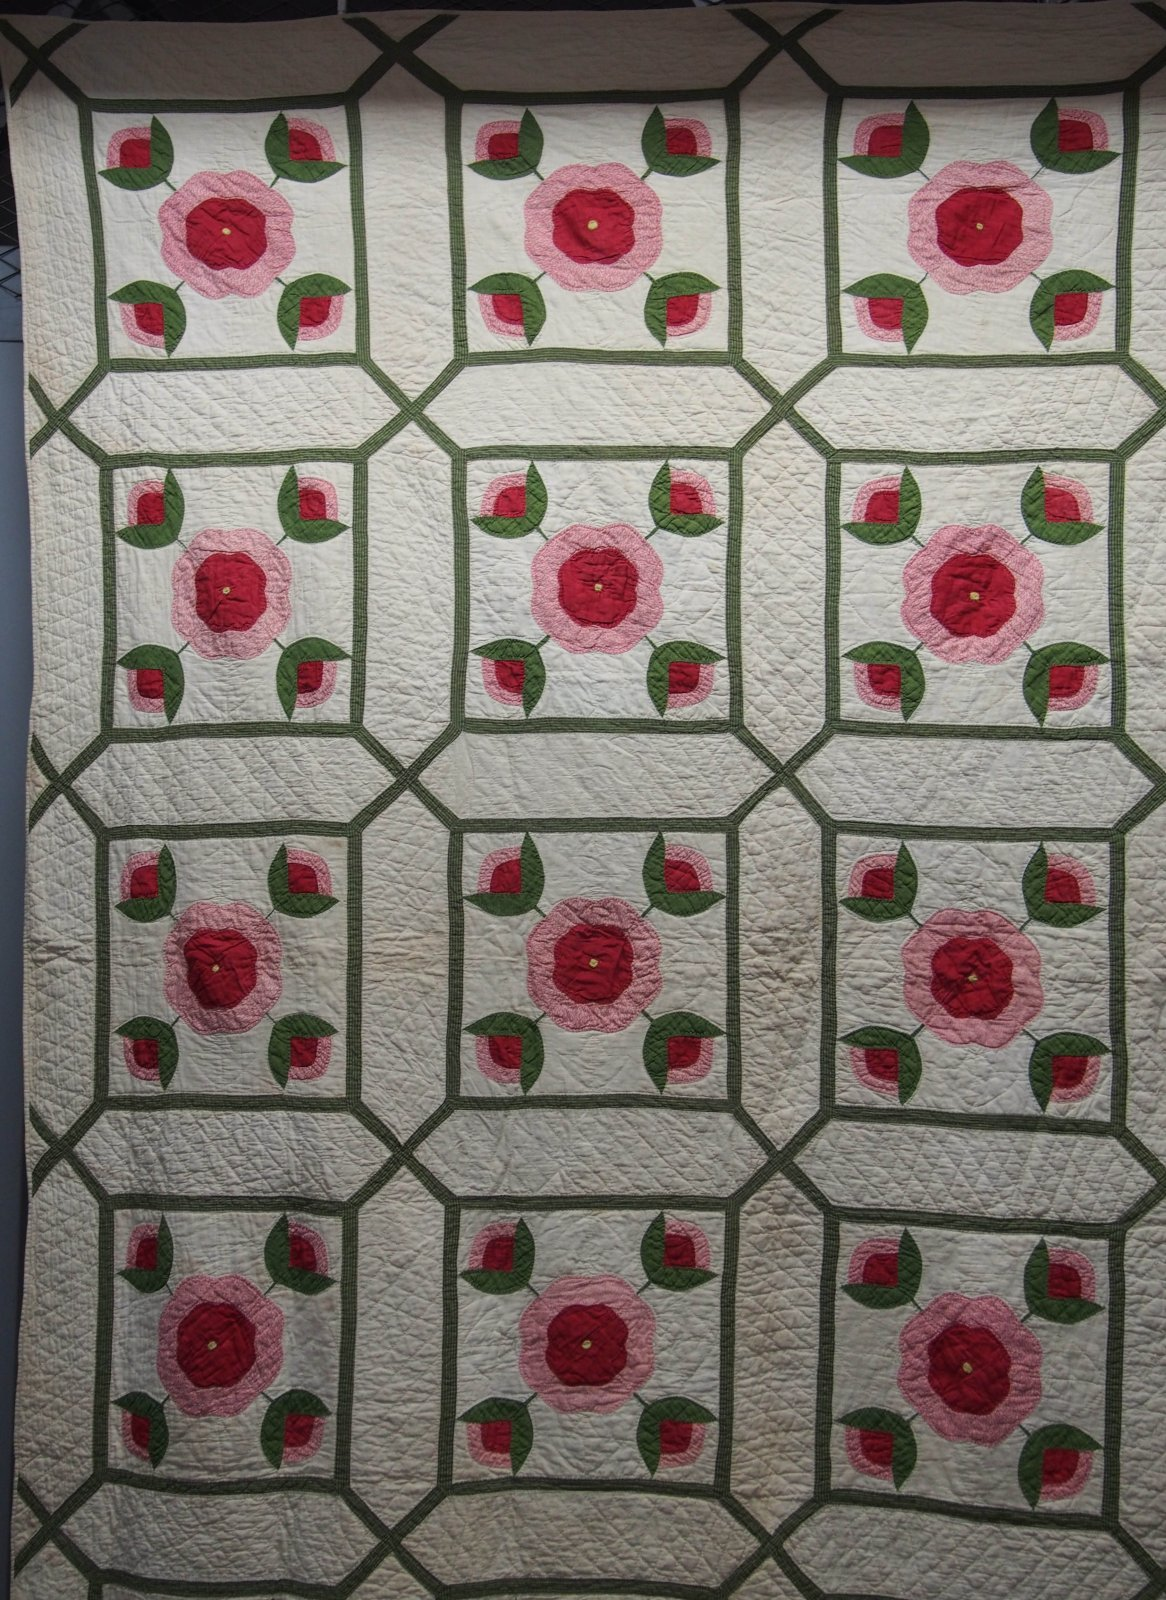 FOUNDATION ROSE IN A MAZE APPLIQUE ANTIQUE QUILT